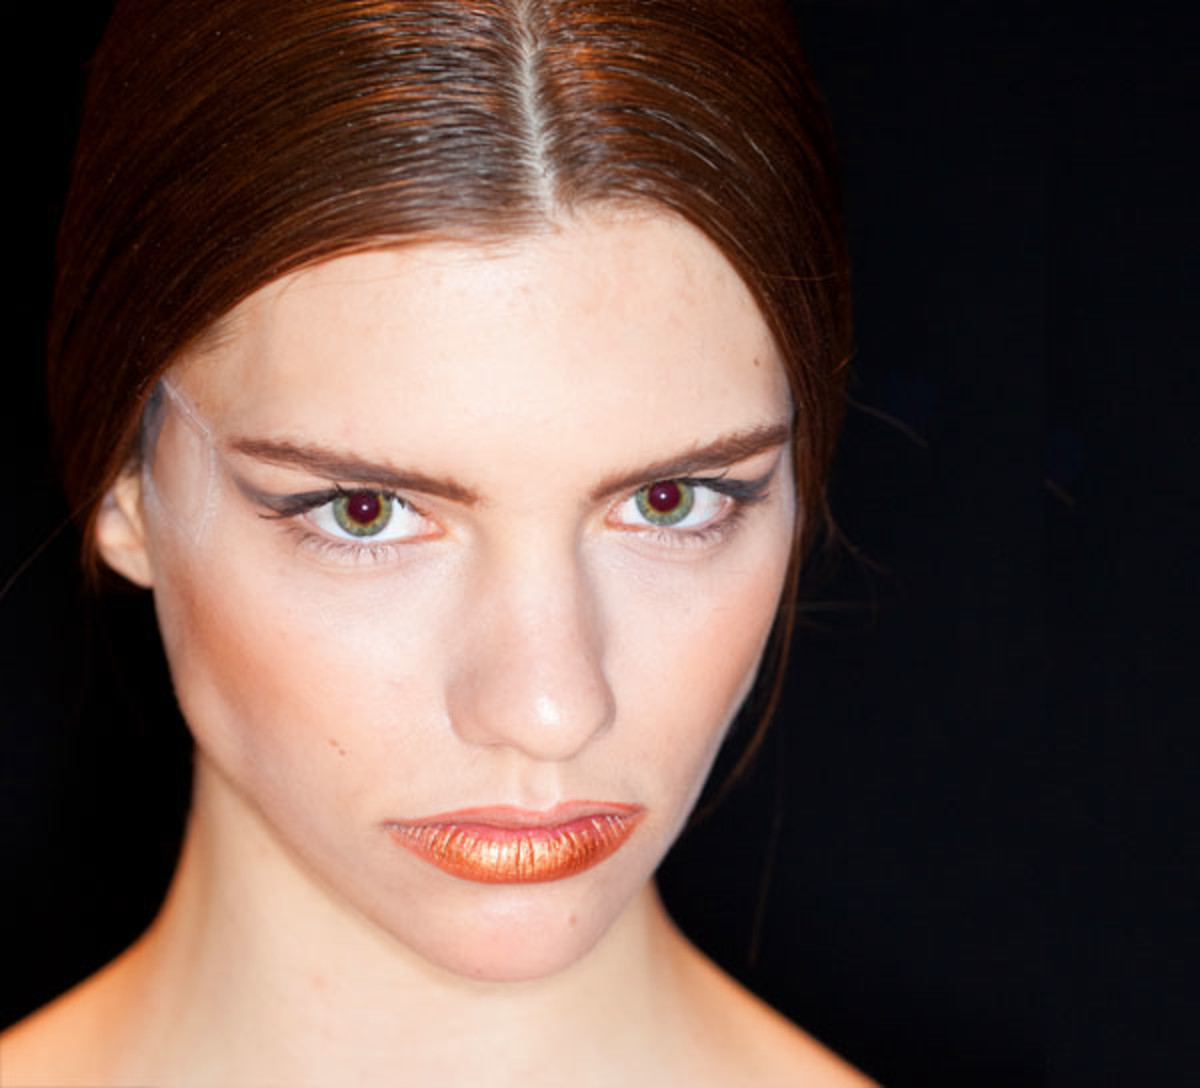 Fabulous MFW Backstage Beauty: Facelift Tape at Melissa Nepton - Beautygeeks #IY82